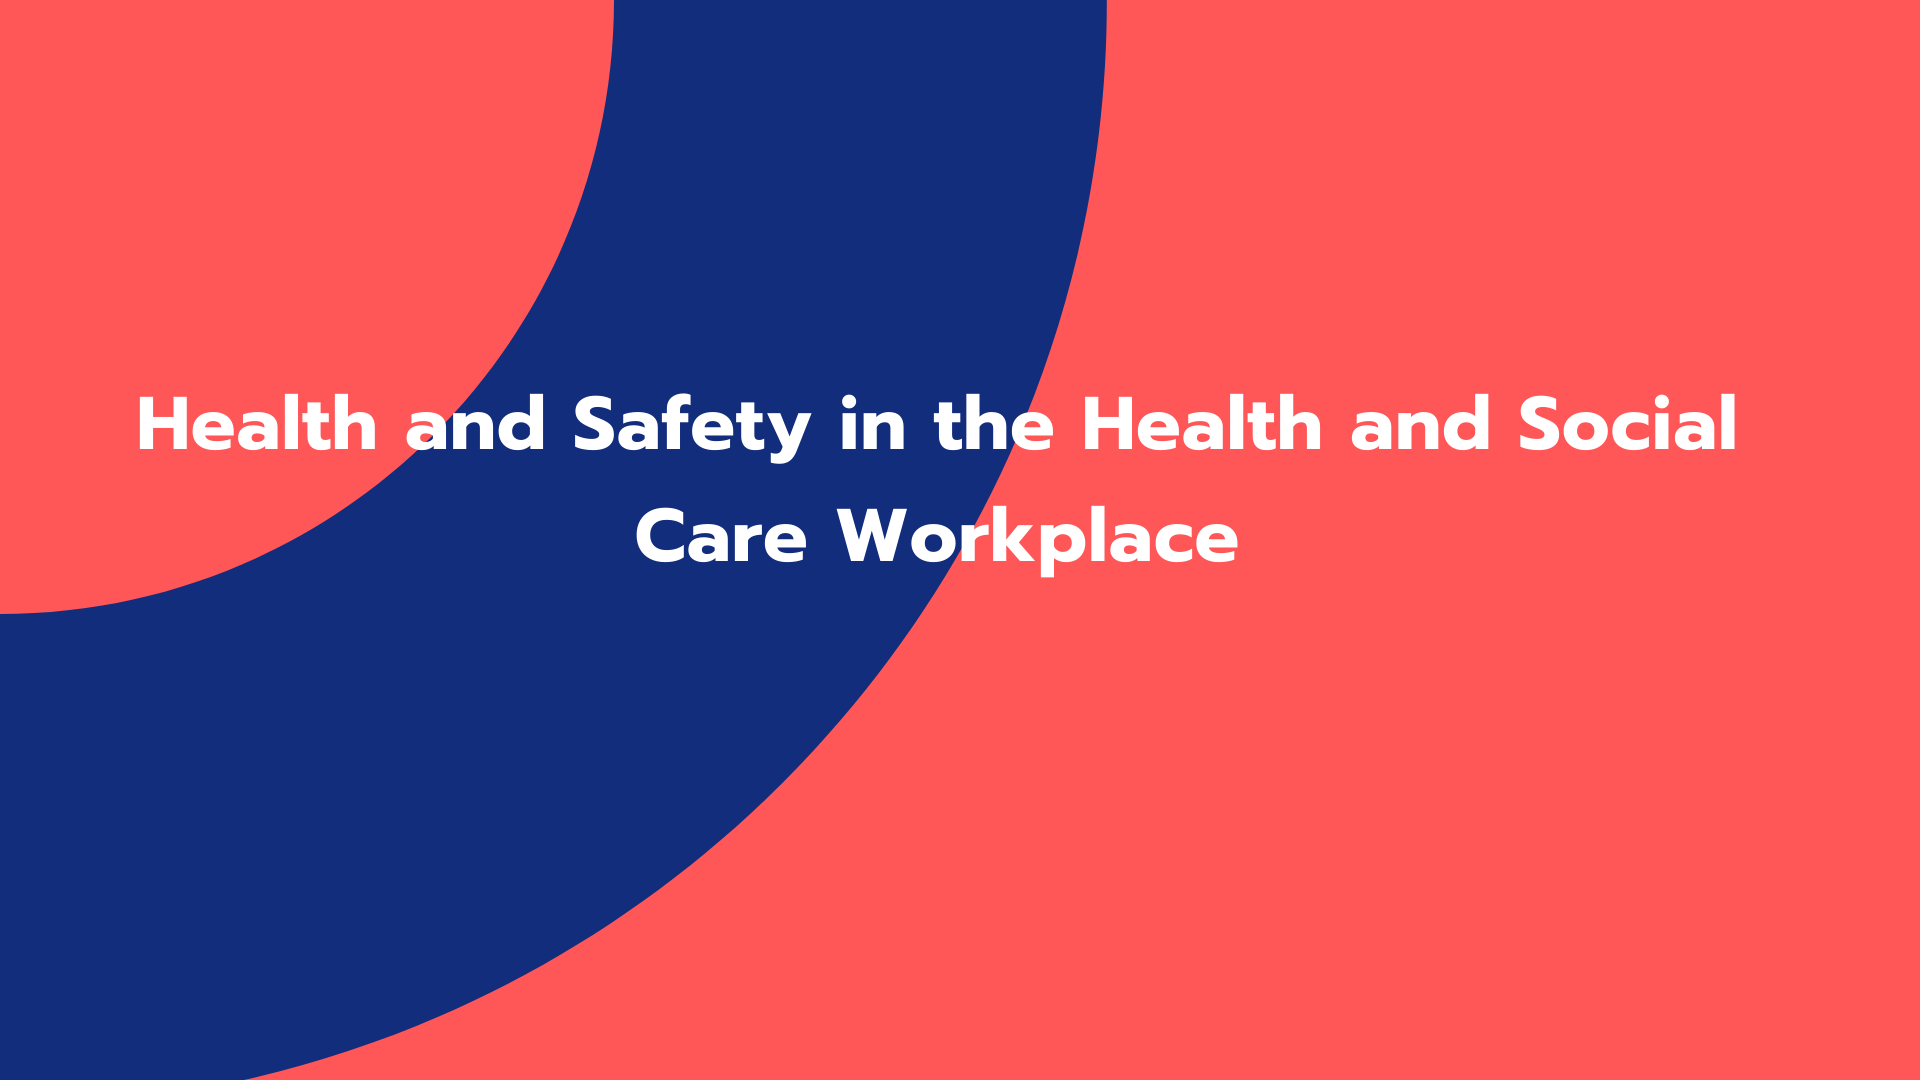 Health and Safety in the Health and Social Care Workplace